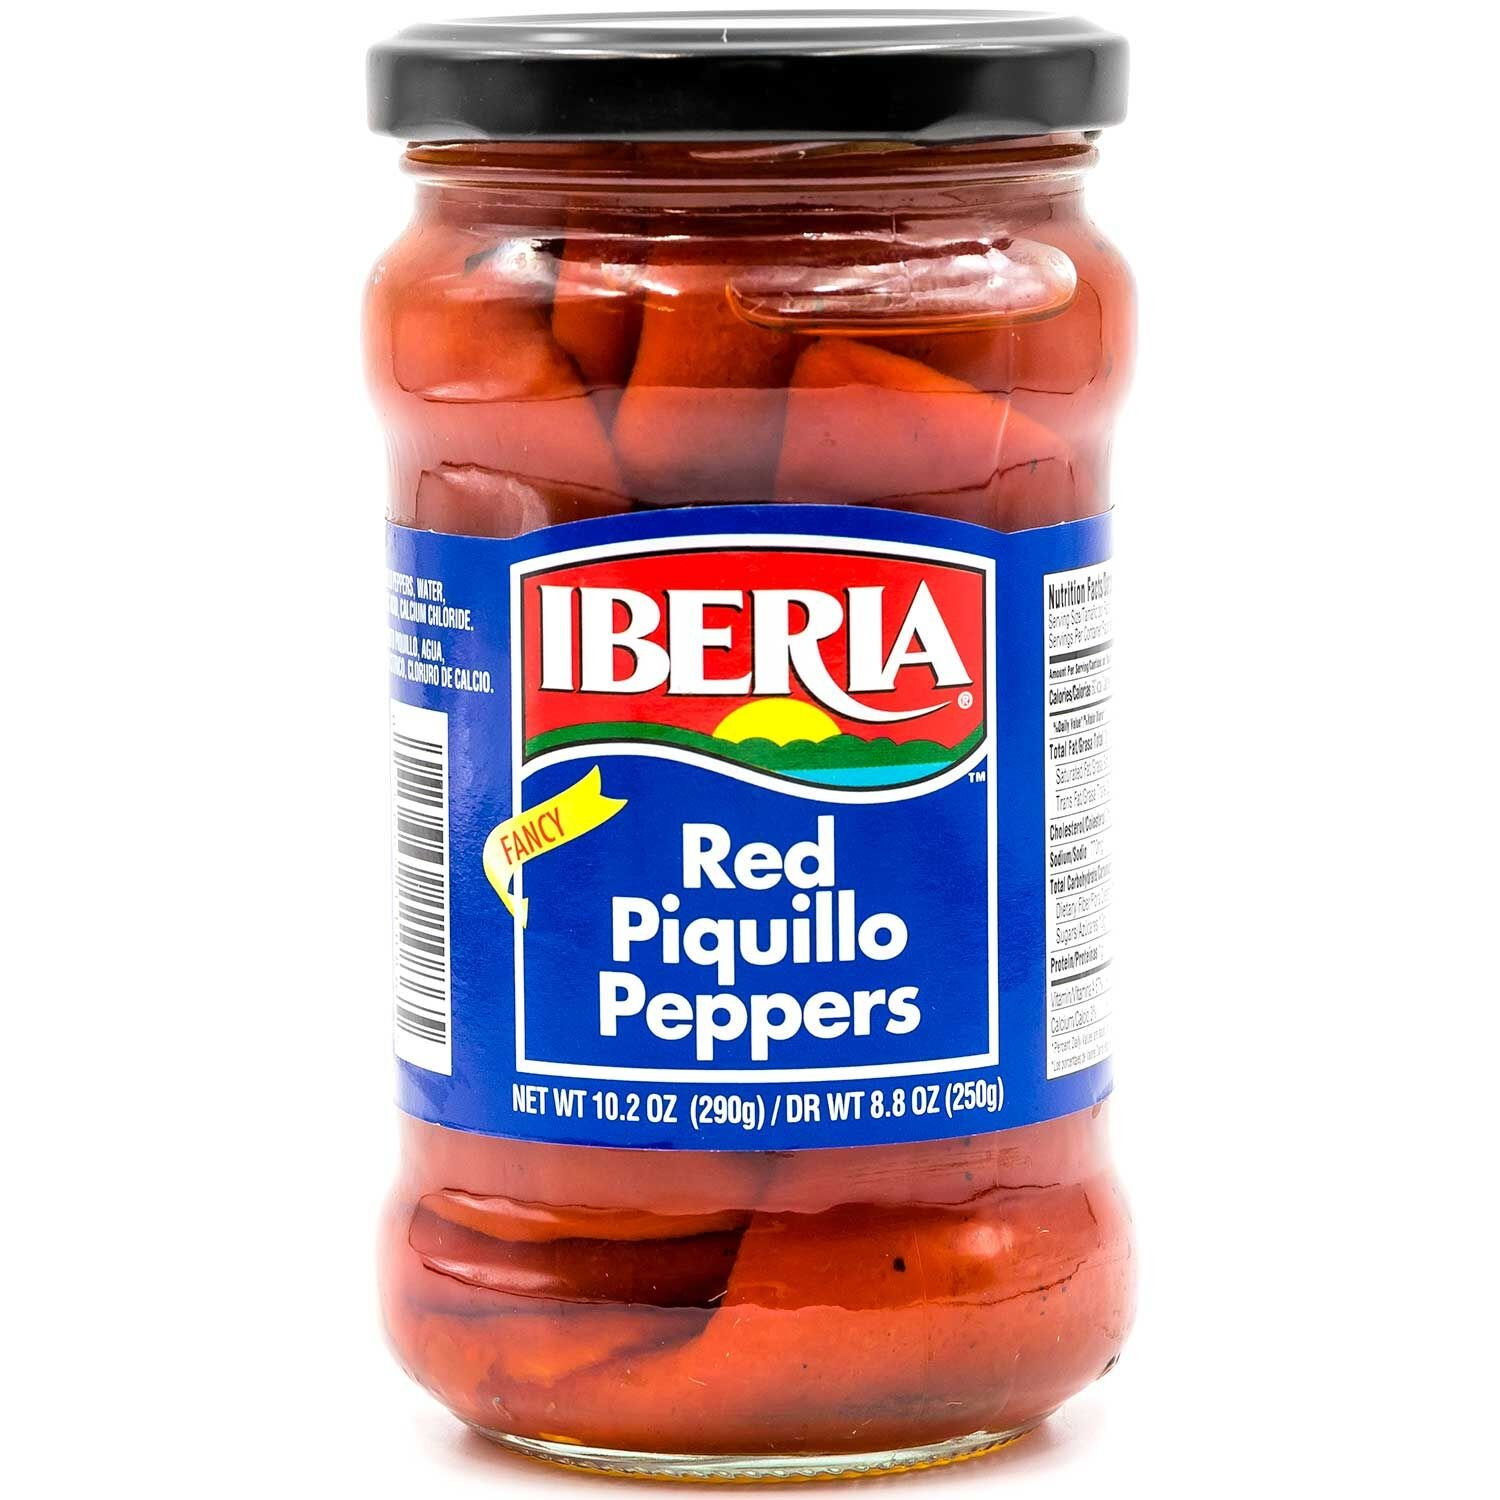 Iberia Red Piquillo Peppers - Pimiento Piquillo 10.2 oz by Iberia